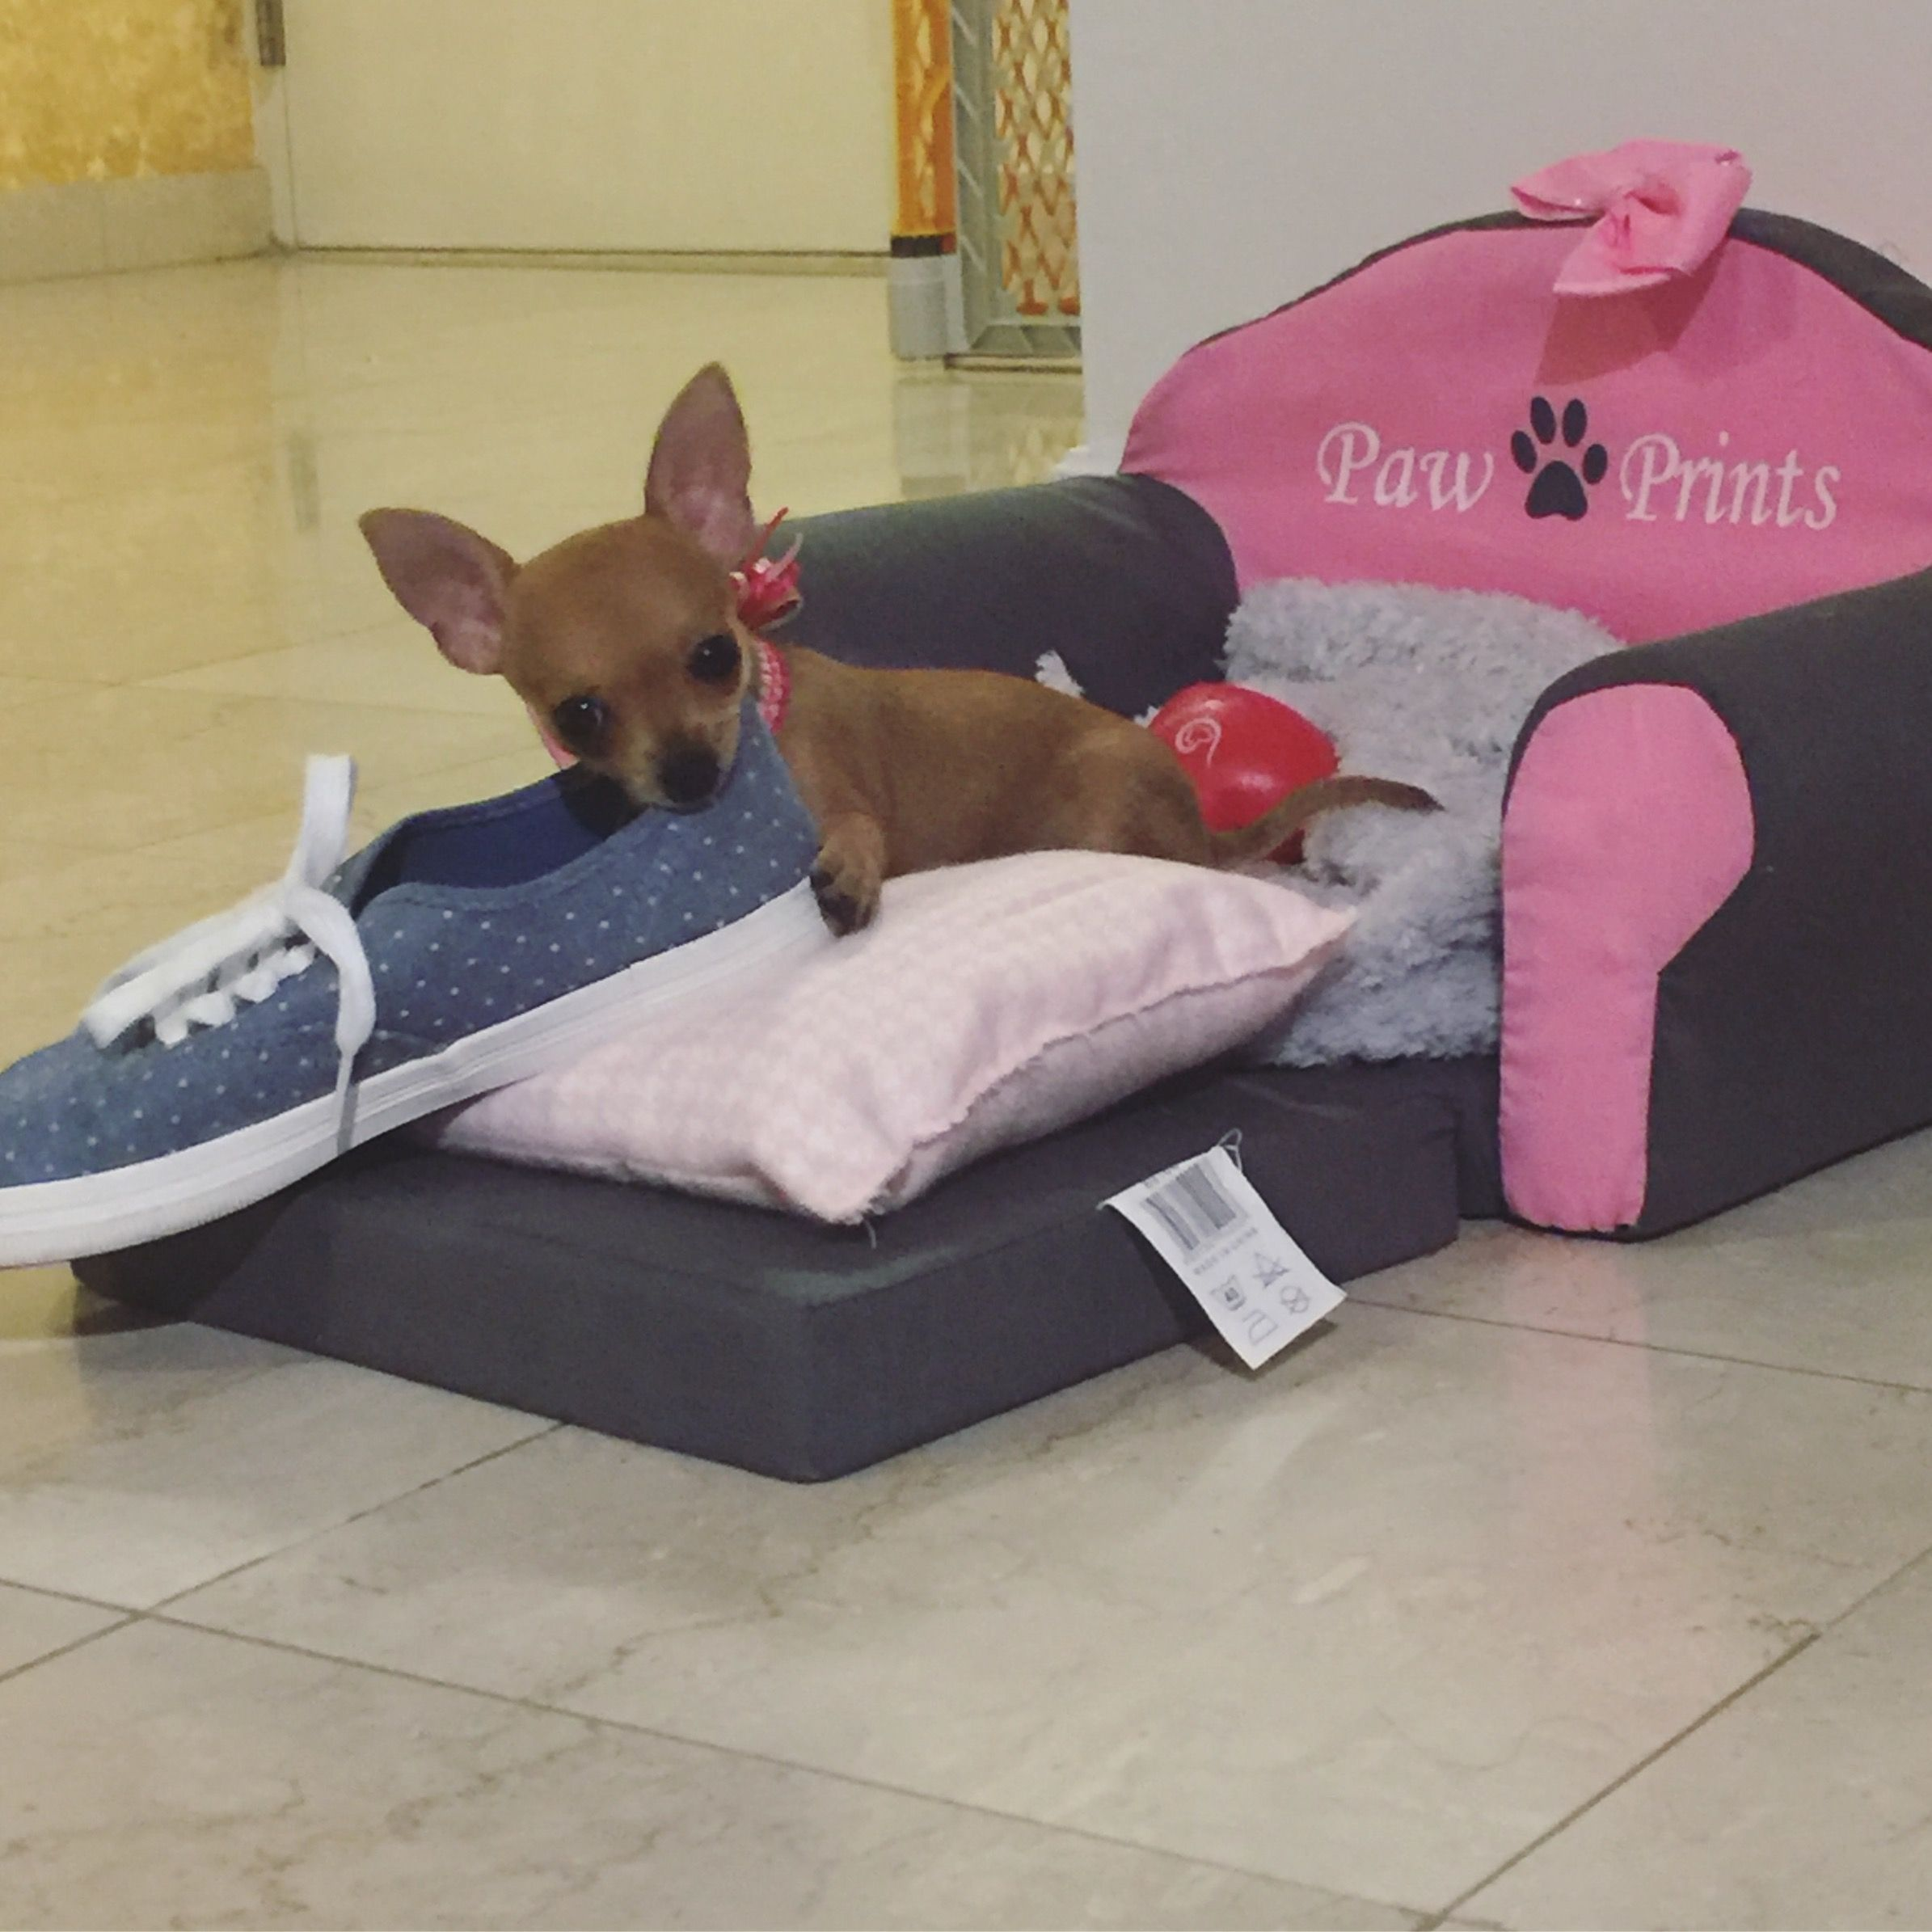 Chihuahua puppy playing with shoes. Chihuahua bed